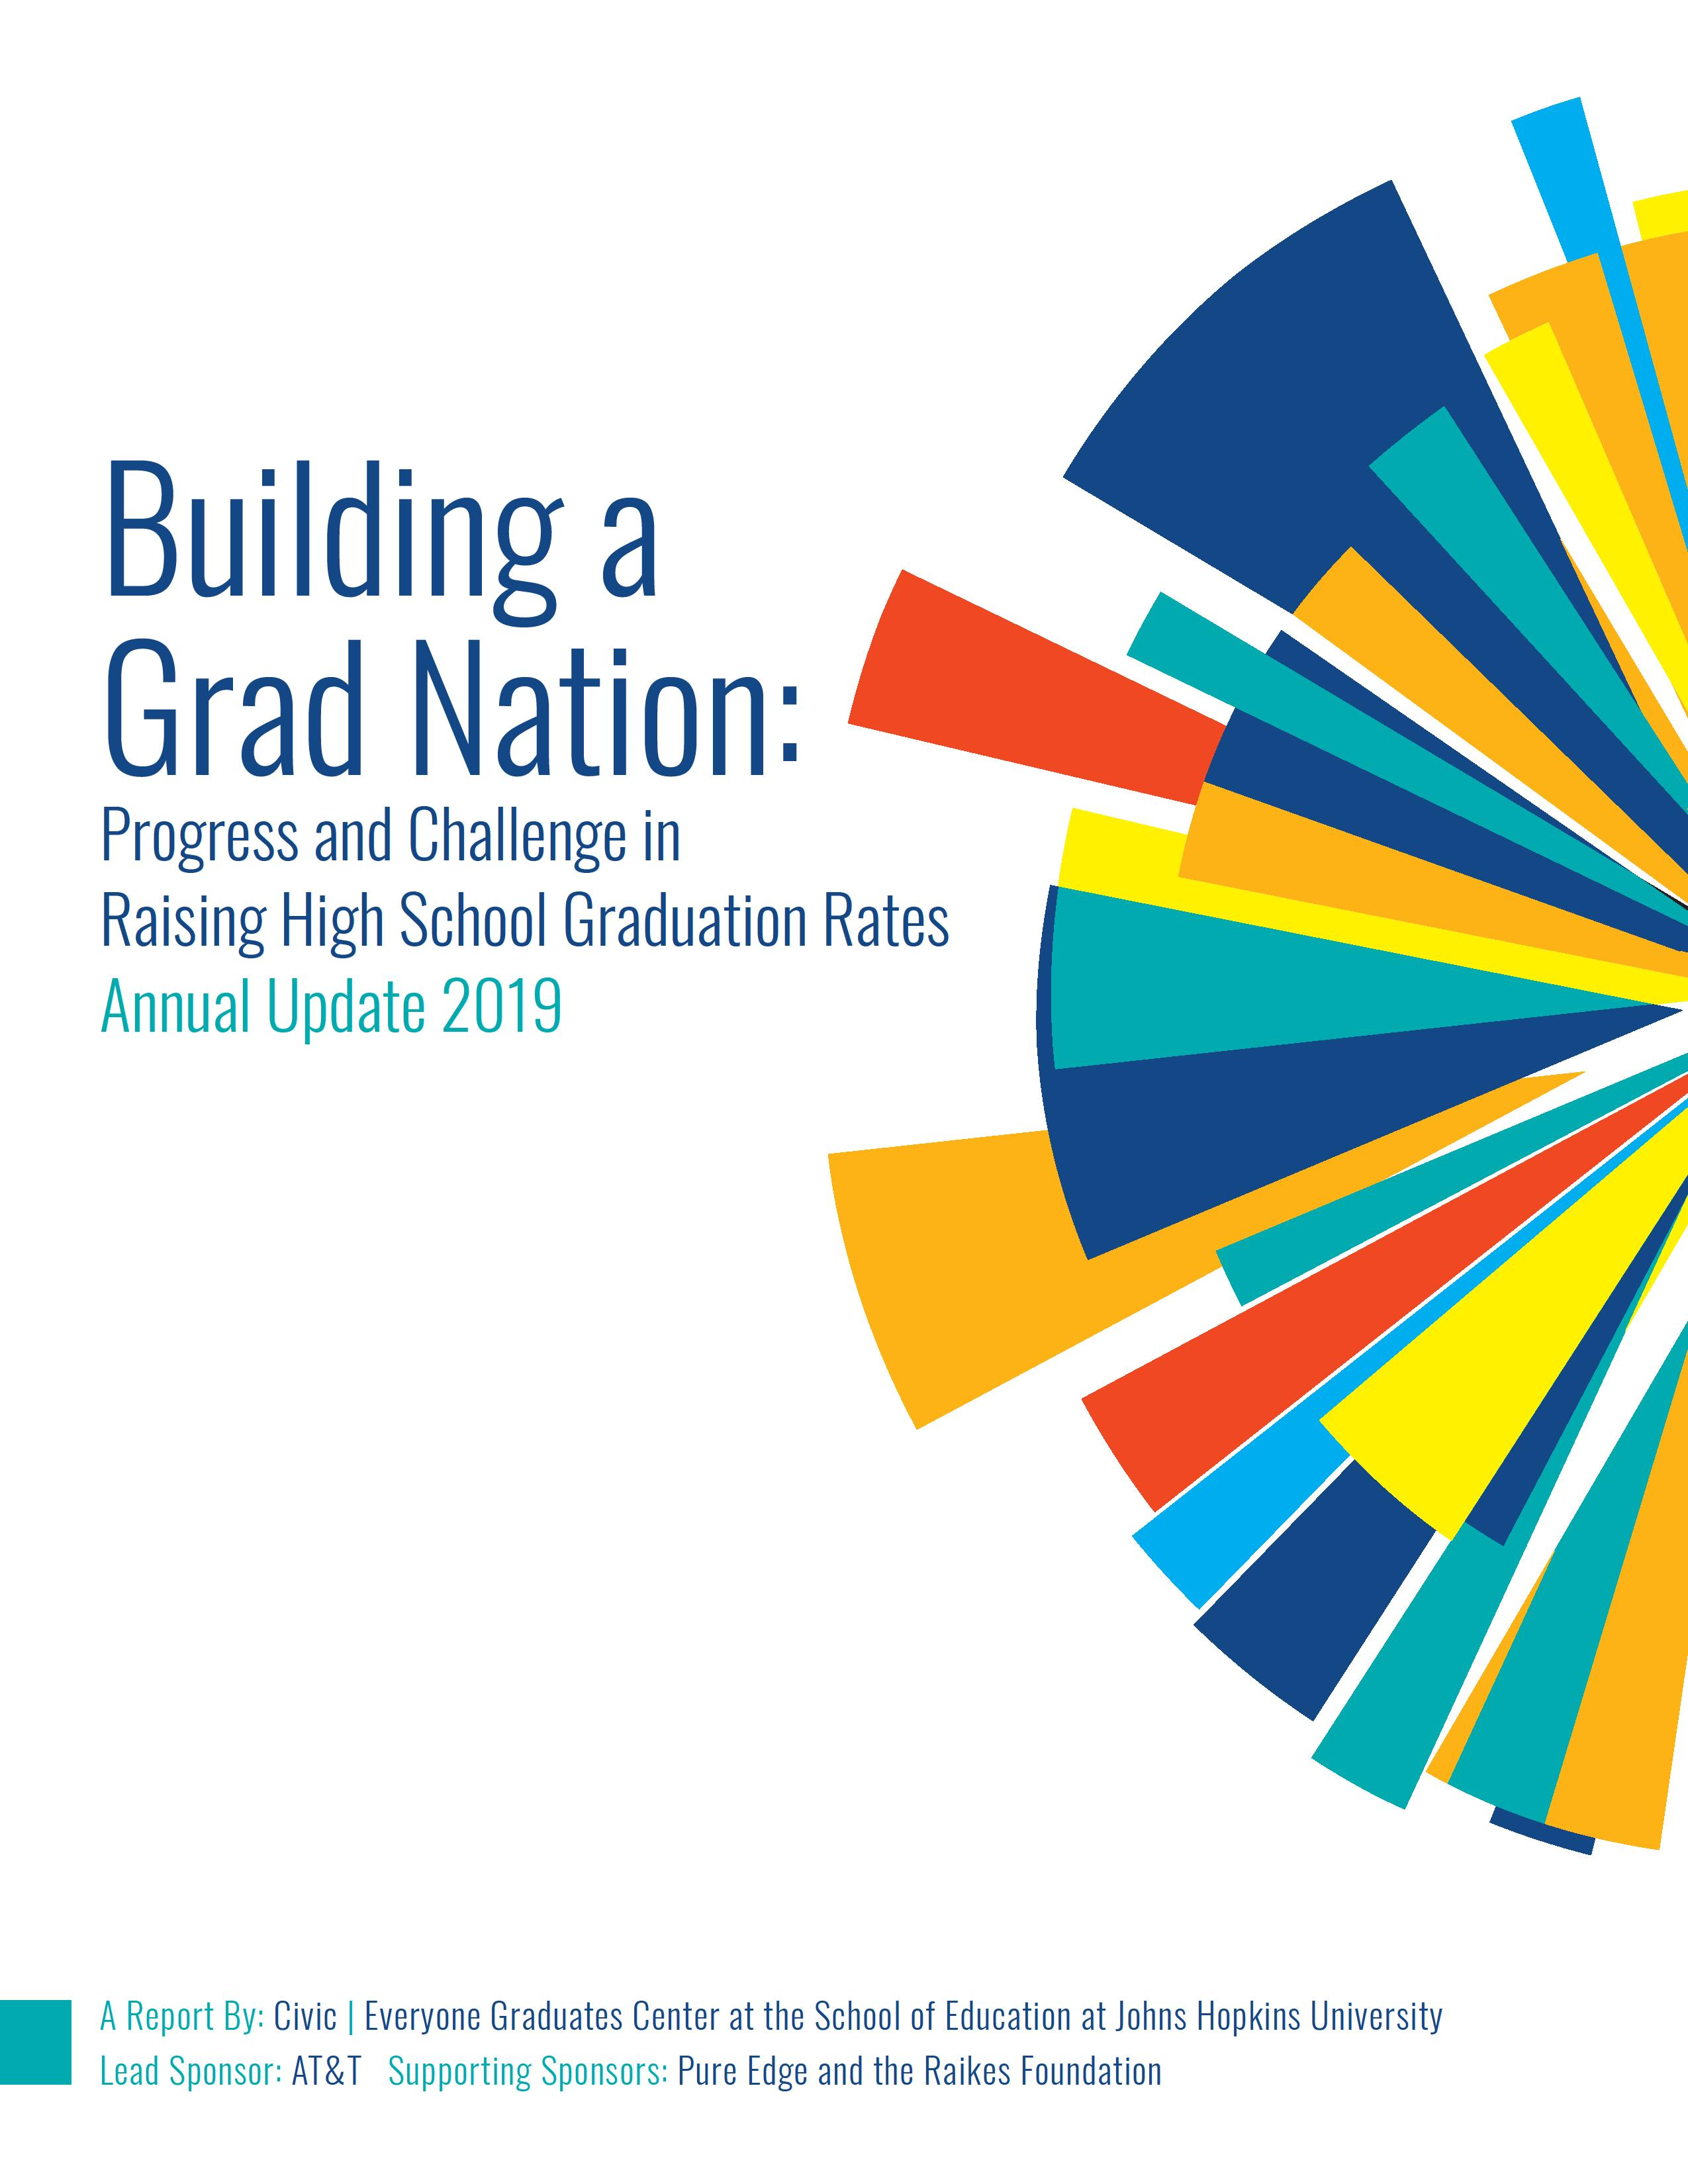 2019 Building A Grad Nation: Progress and Challenge in Raising High School Graduation Rates Cover Image